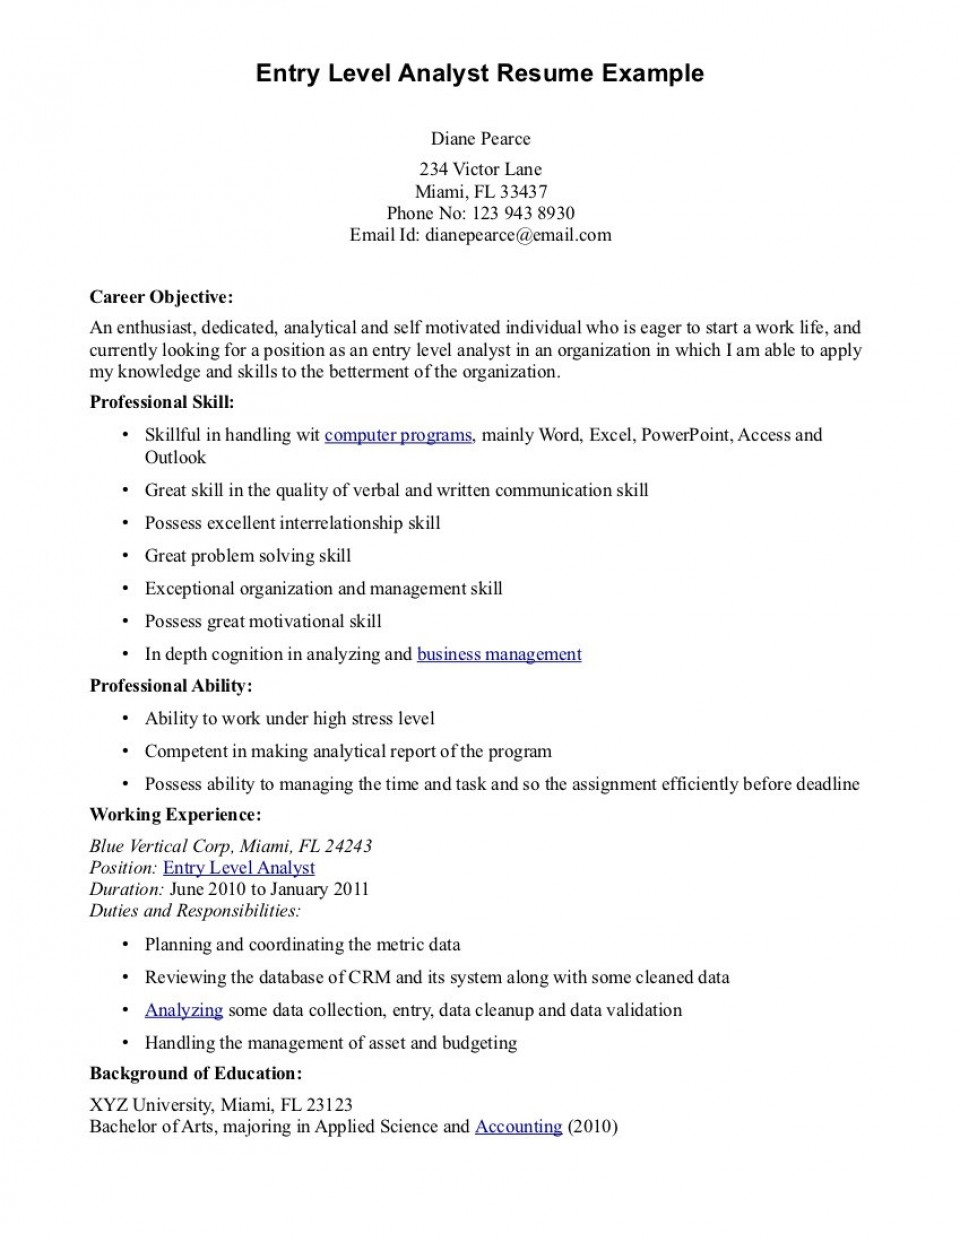 016 Cyber Security Research Paper Example Entry Level Resume Objective Examples Dreaded 960